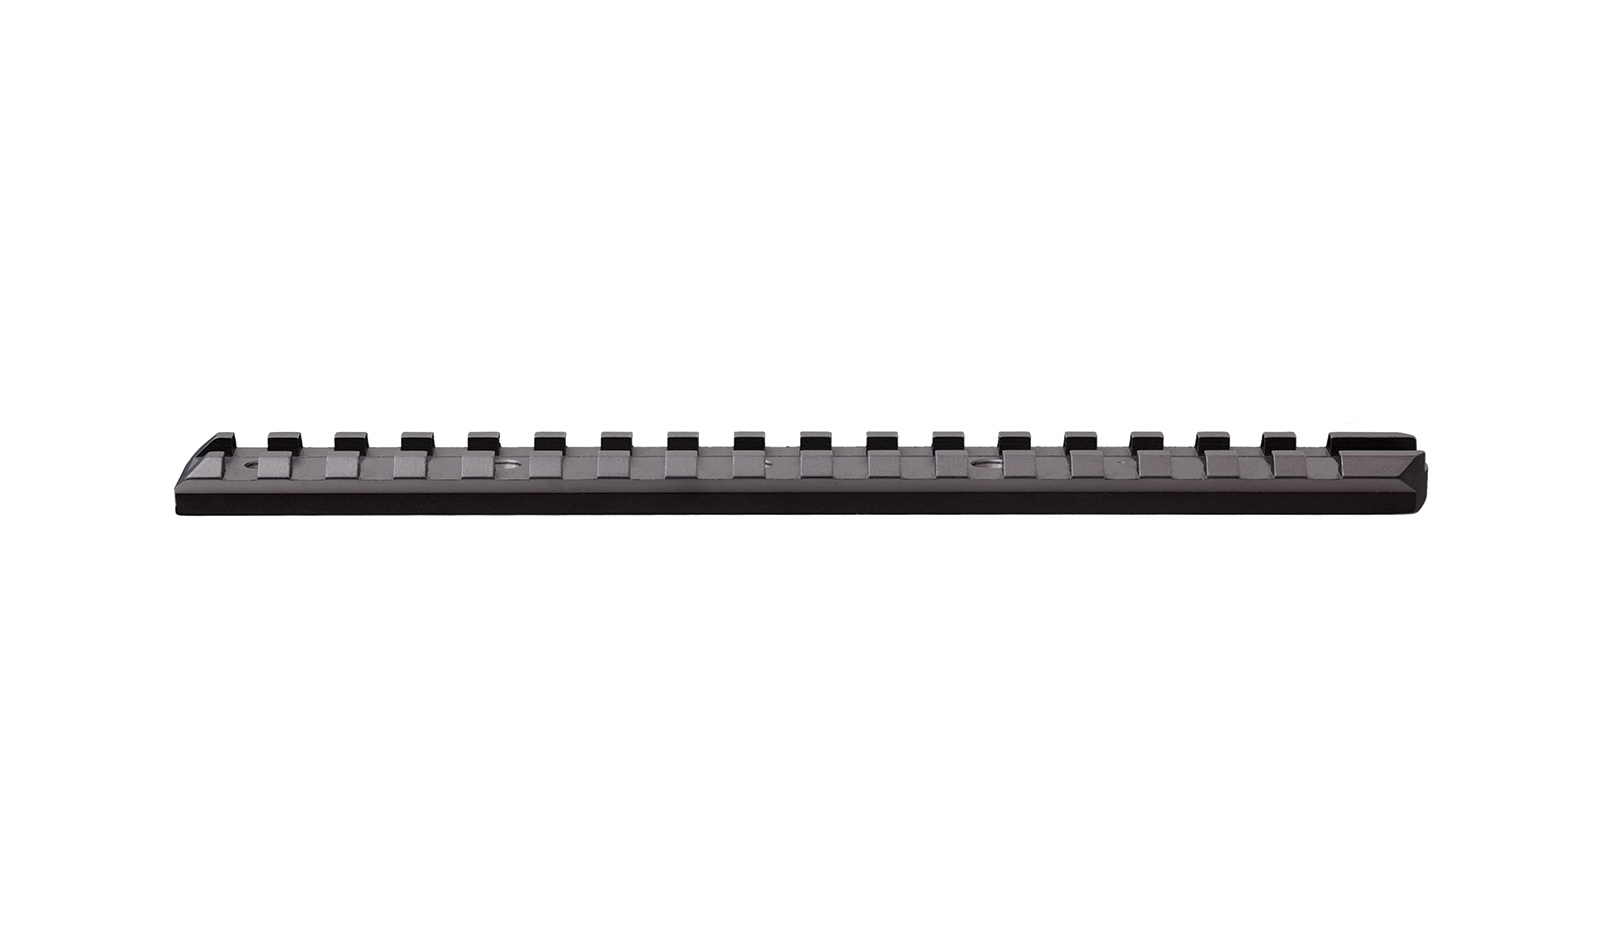 Full 1913 Picatinny Aluminum Rail for Remington® 870 Shotgun